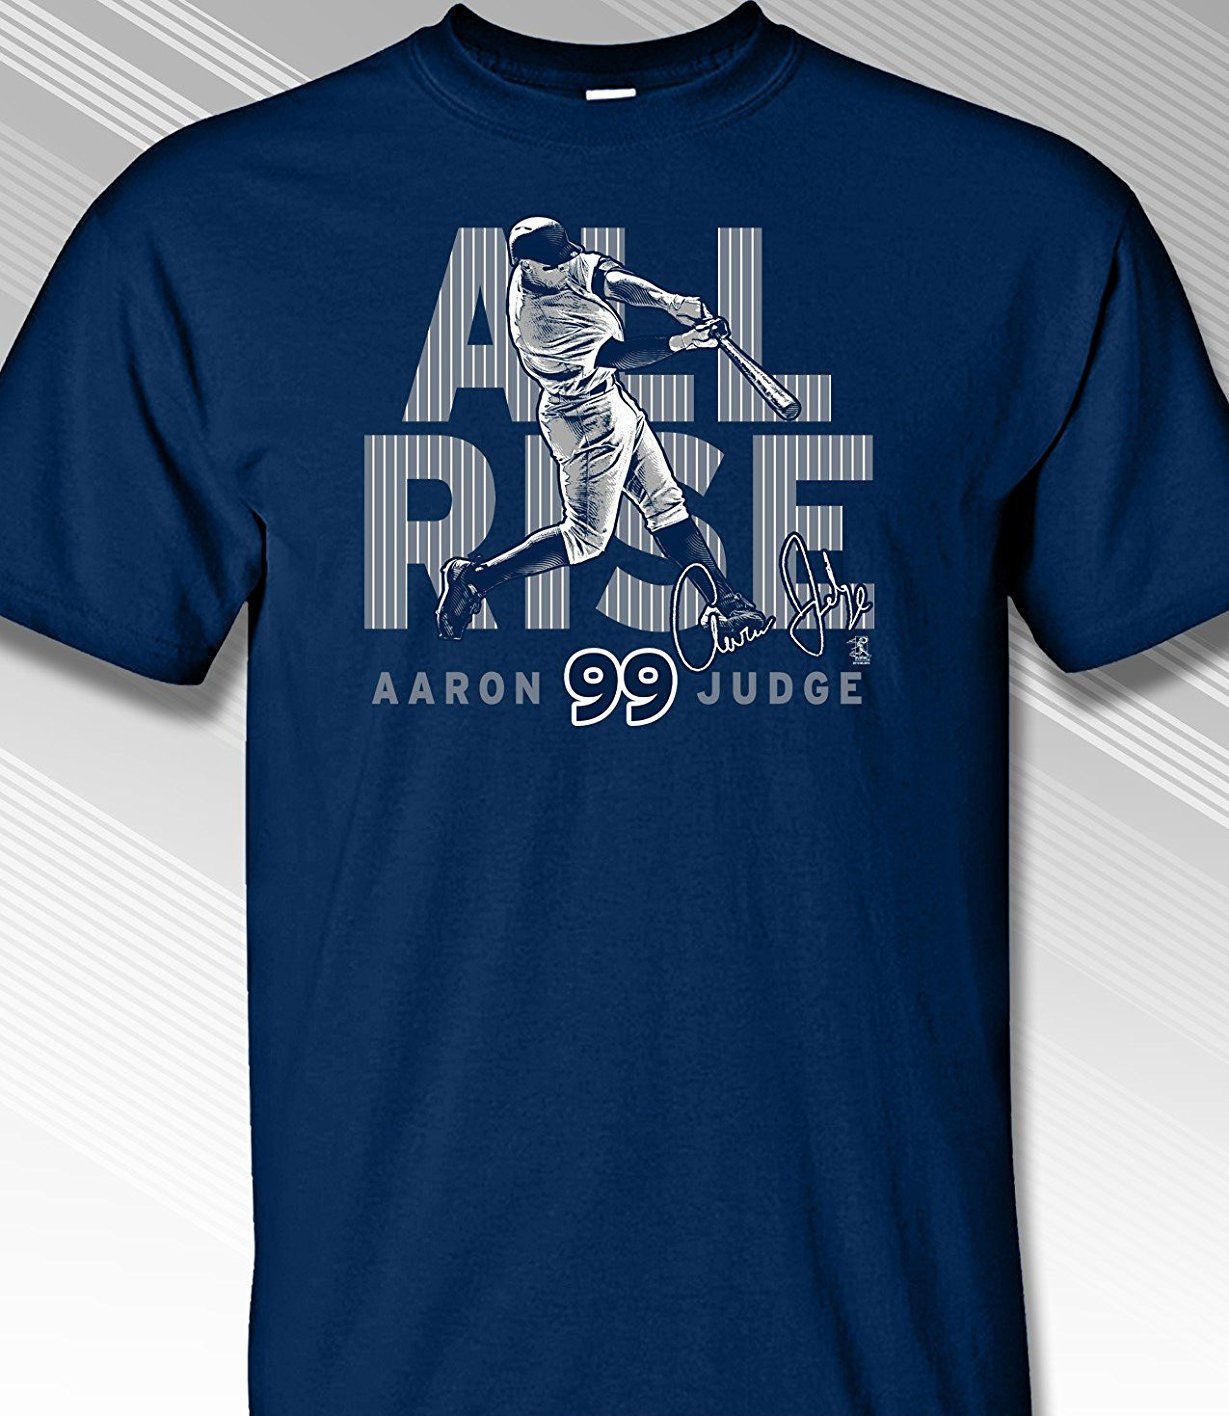 Aaron Judge ALL RISE New York 99 T-Shirt<br>Short or Long Sleeve<br>Youth Med to Adult 4X